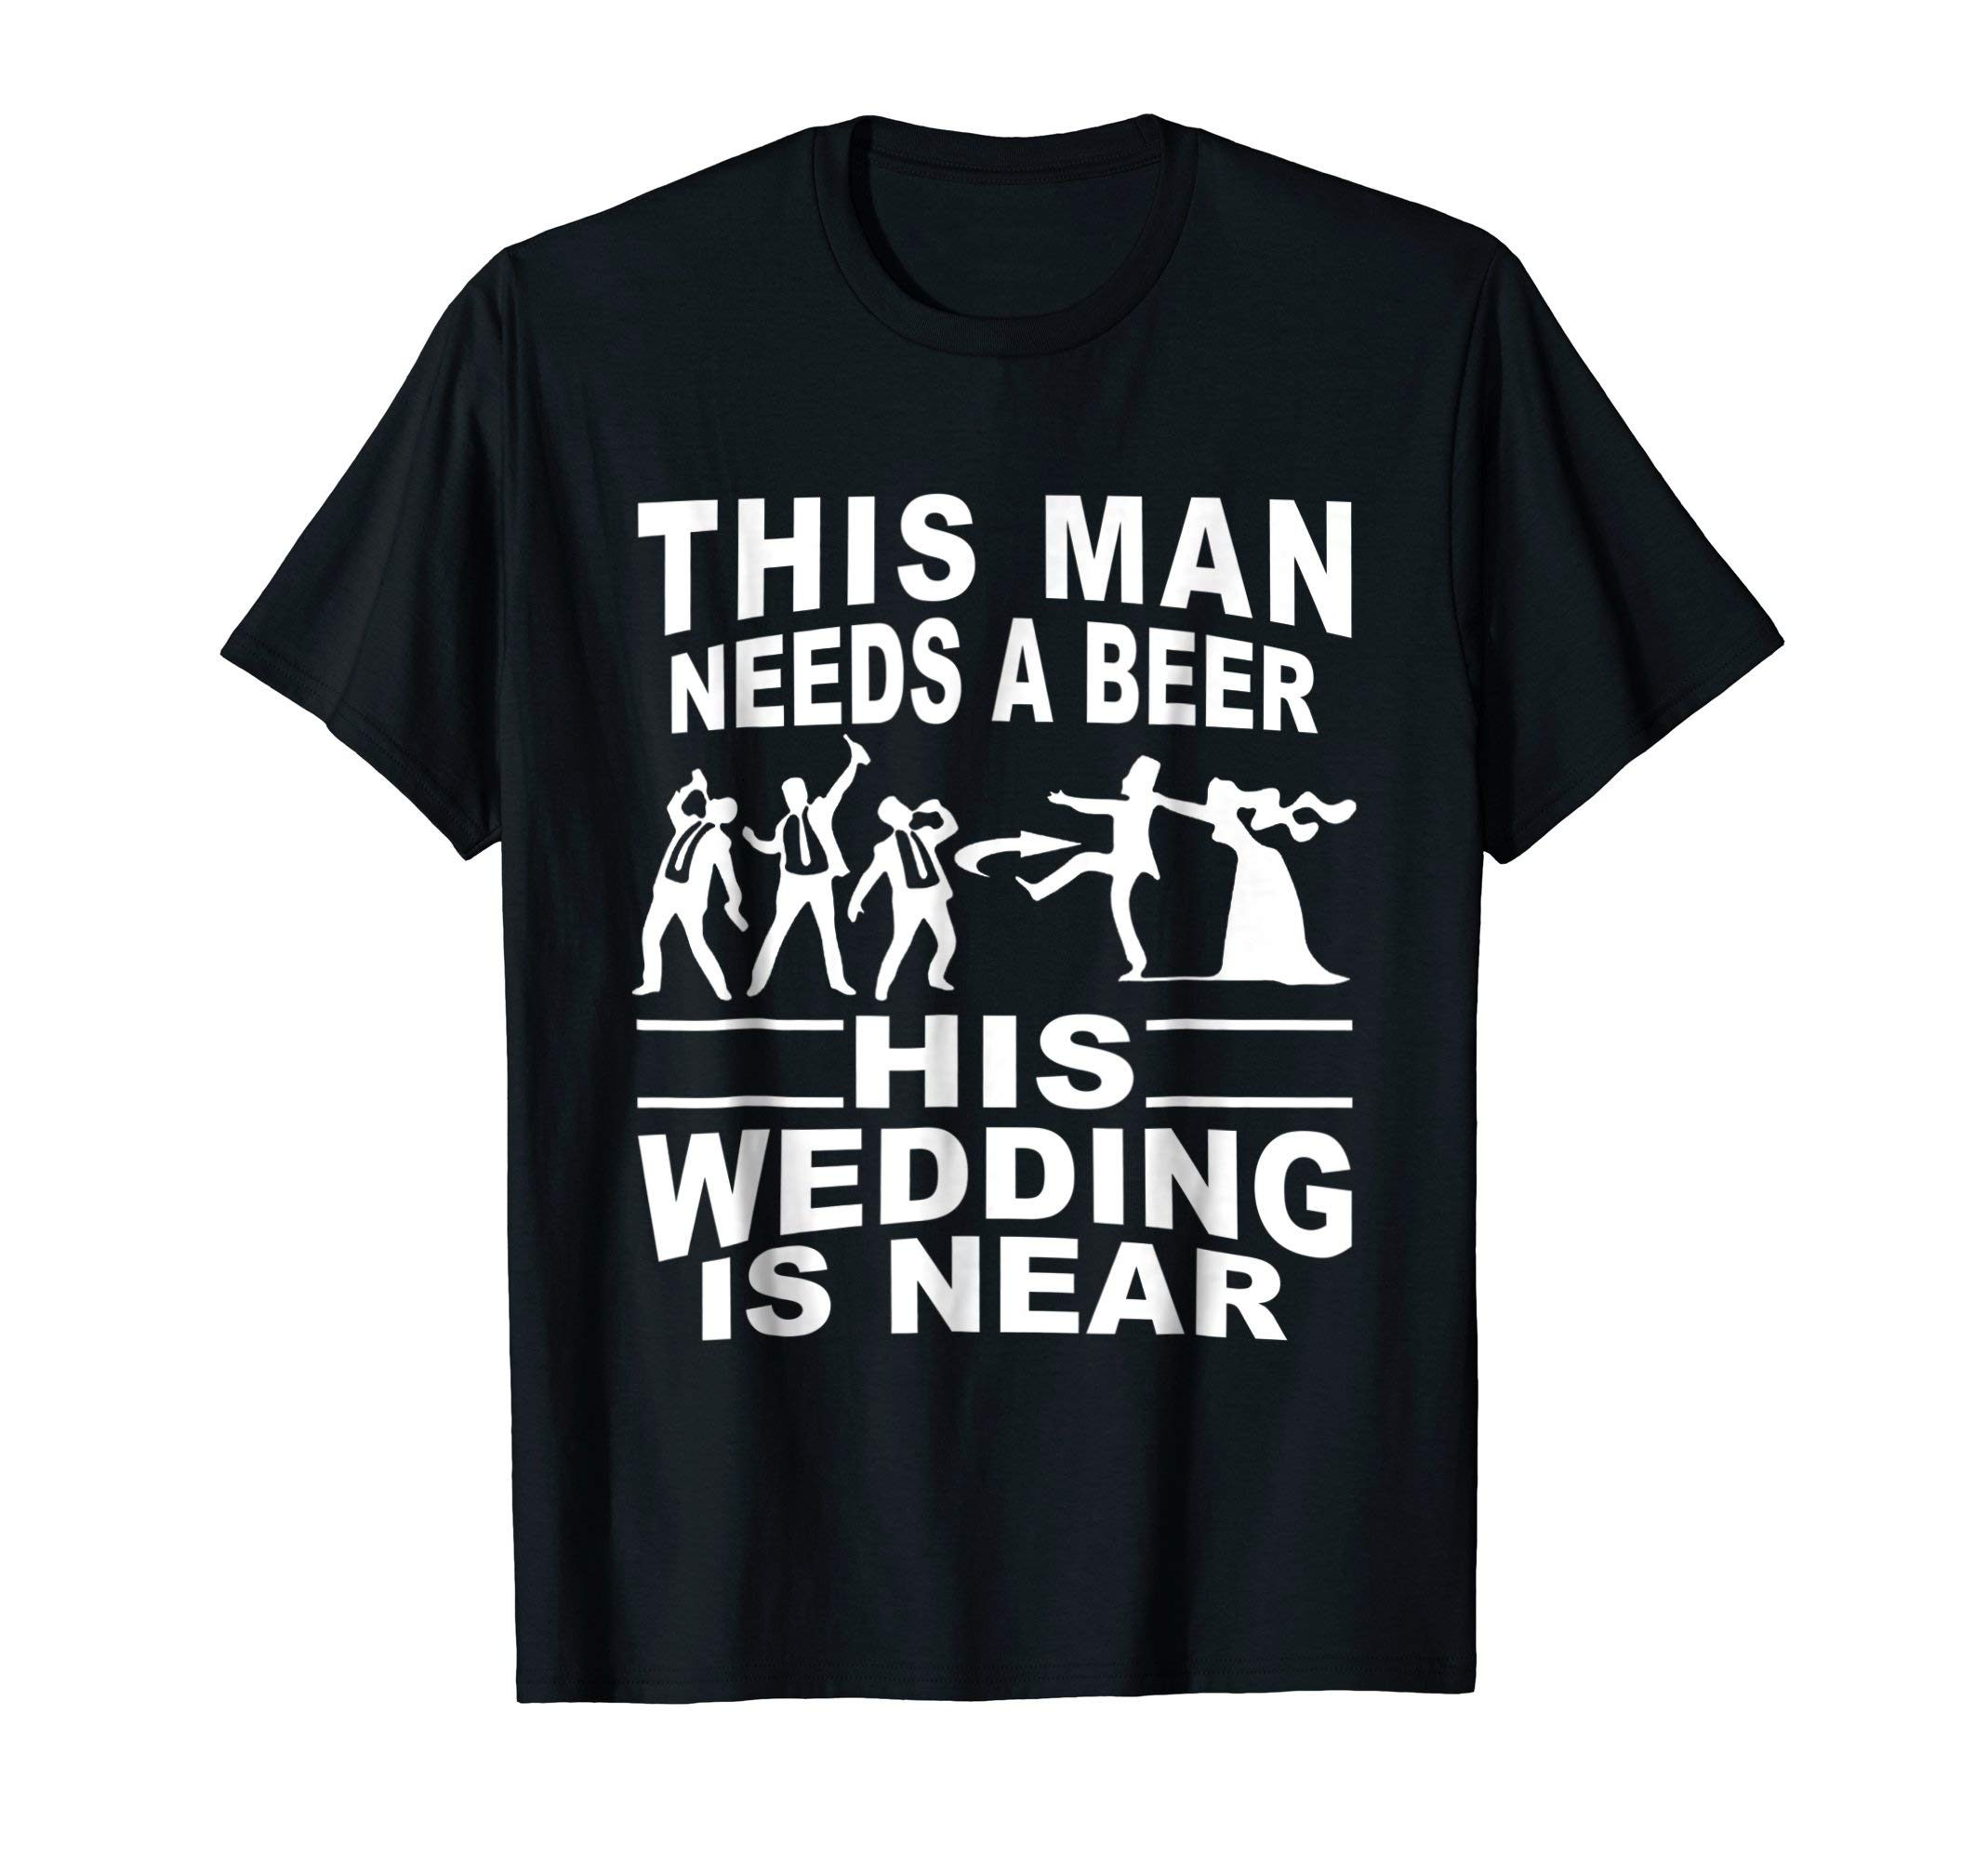 this man needs a beer his wedding is near wedding tshirt by wedding gift t-shirt (Image #1)